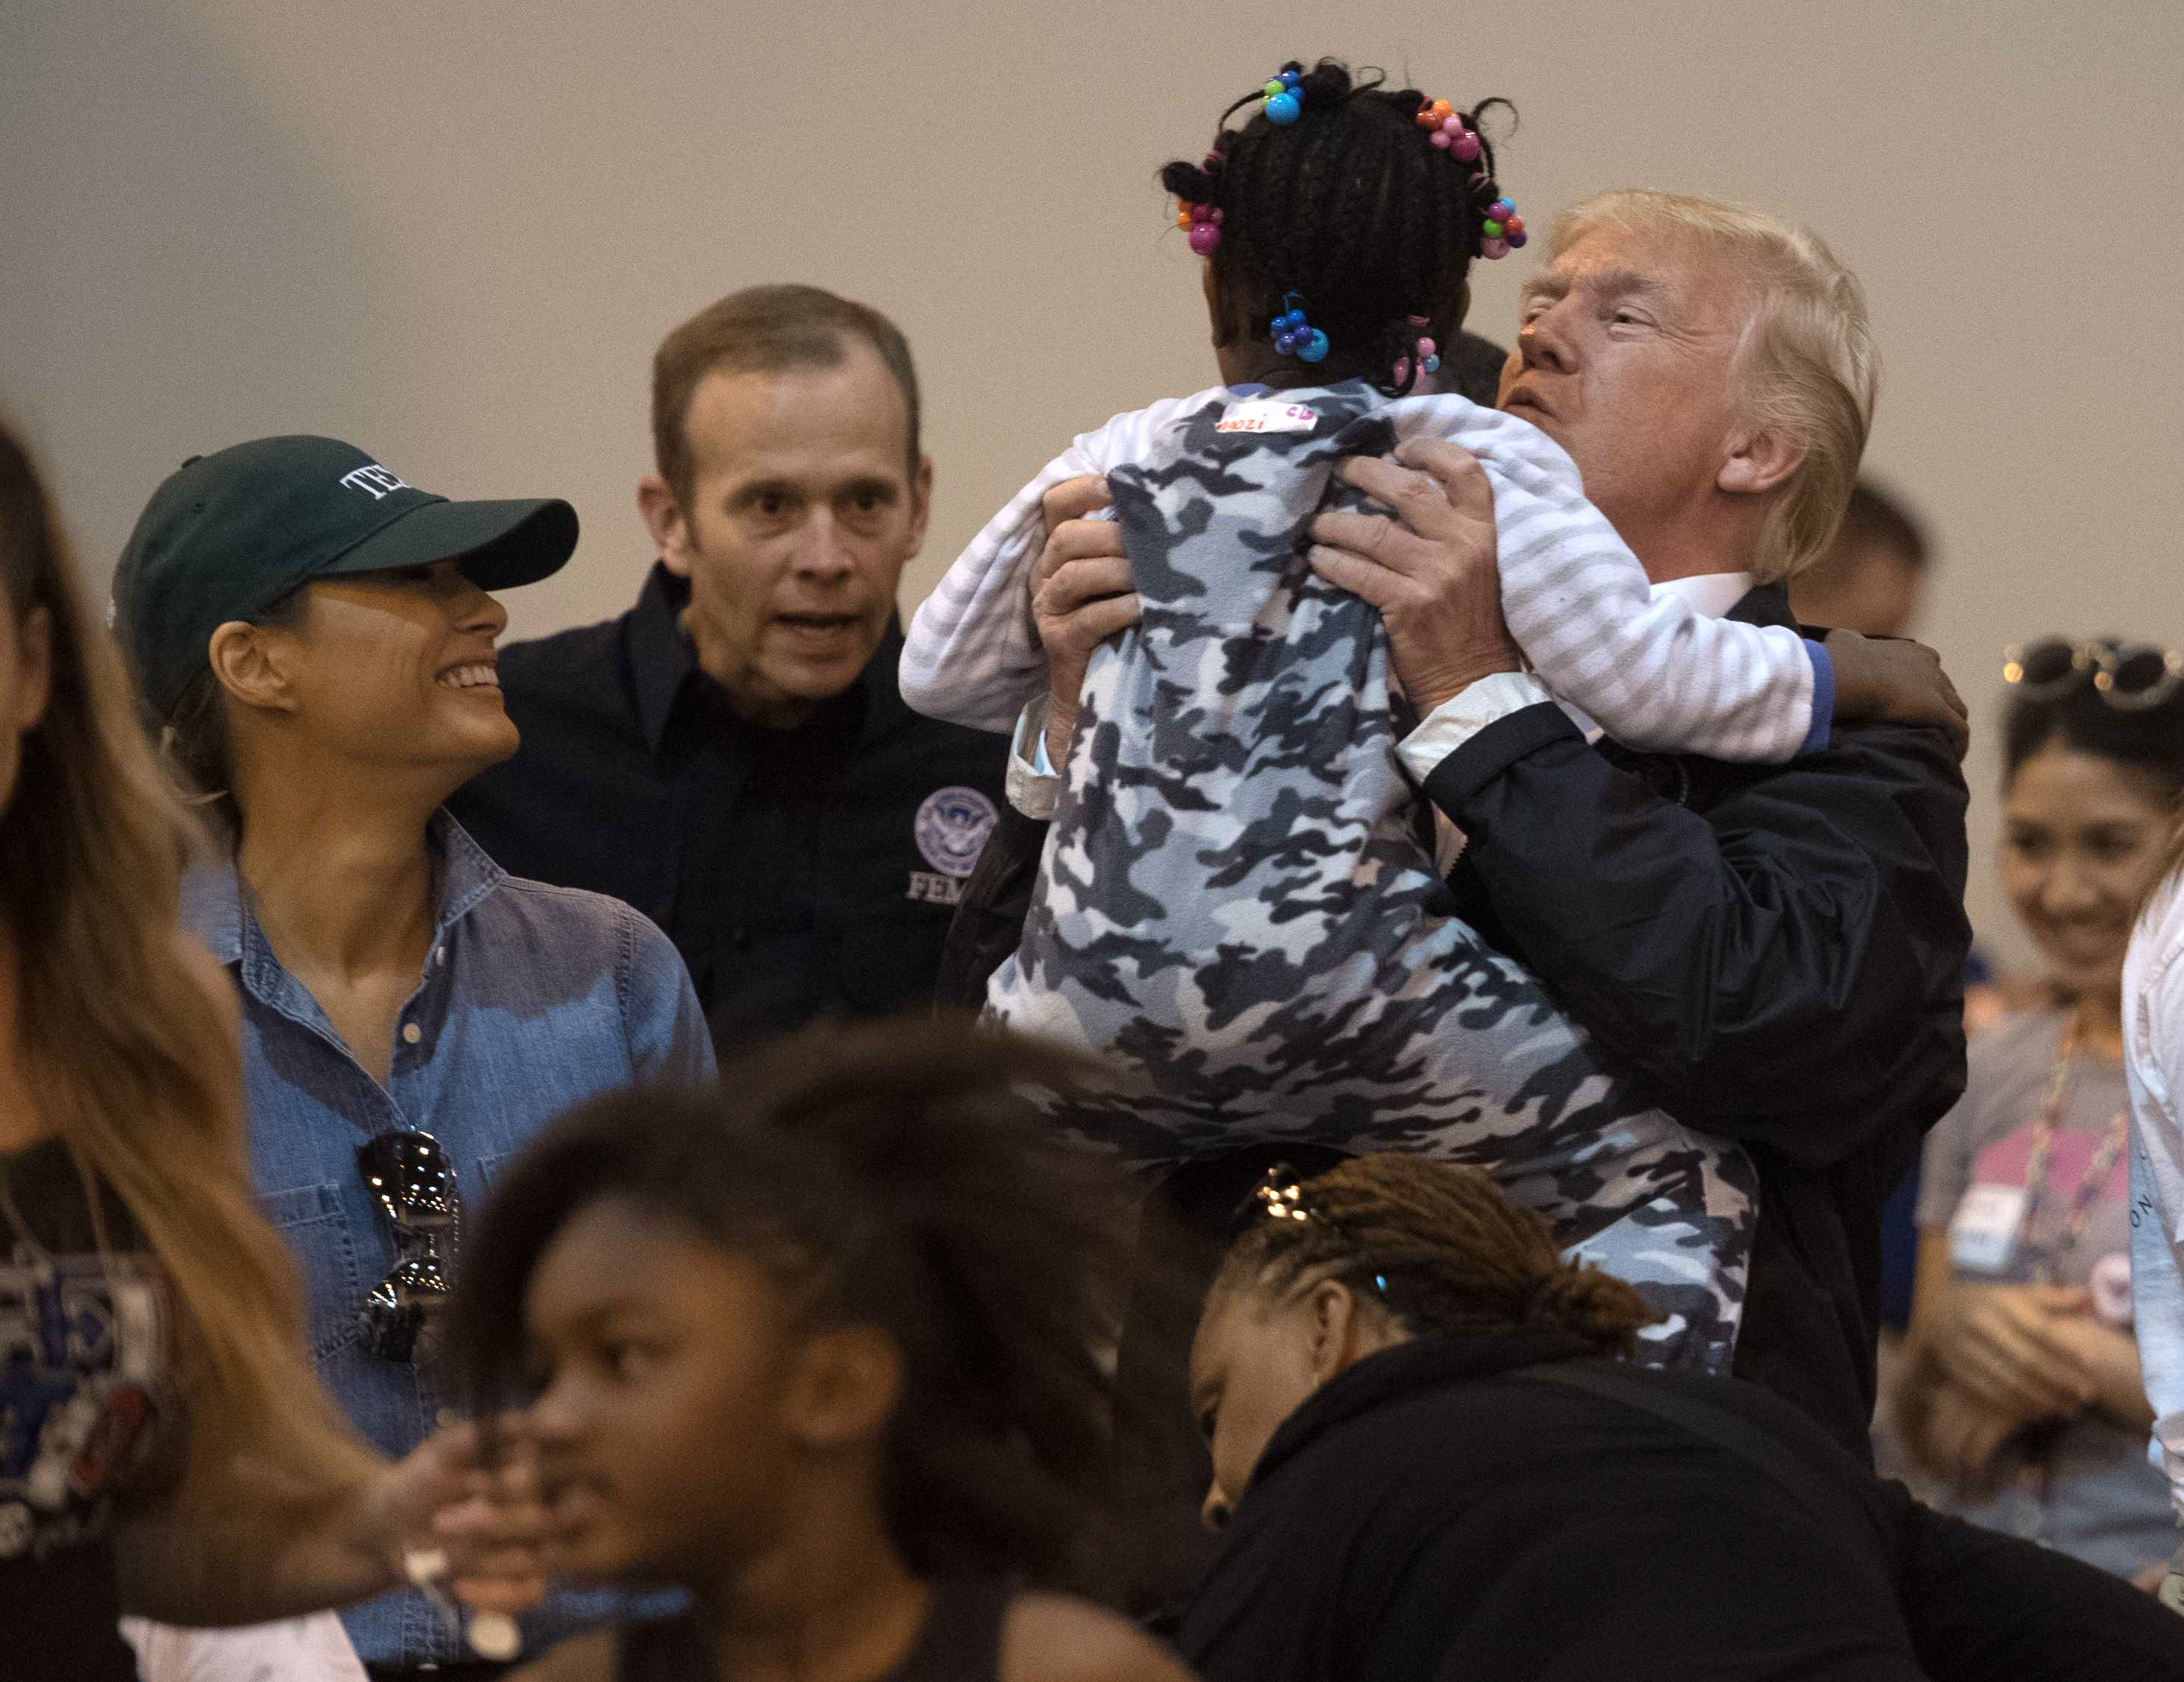 US President Donald Trump and First Lady Melania Trump greet a young Hurricane Harvey victim at NRG Center in Houston on September 2, 2017. NICHOLAS KAMM/AFP/Getty Images